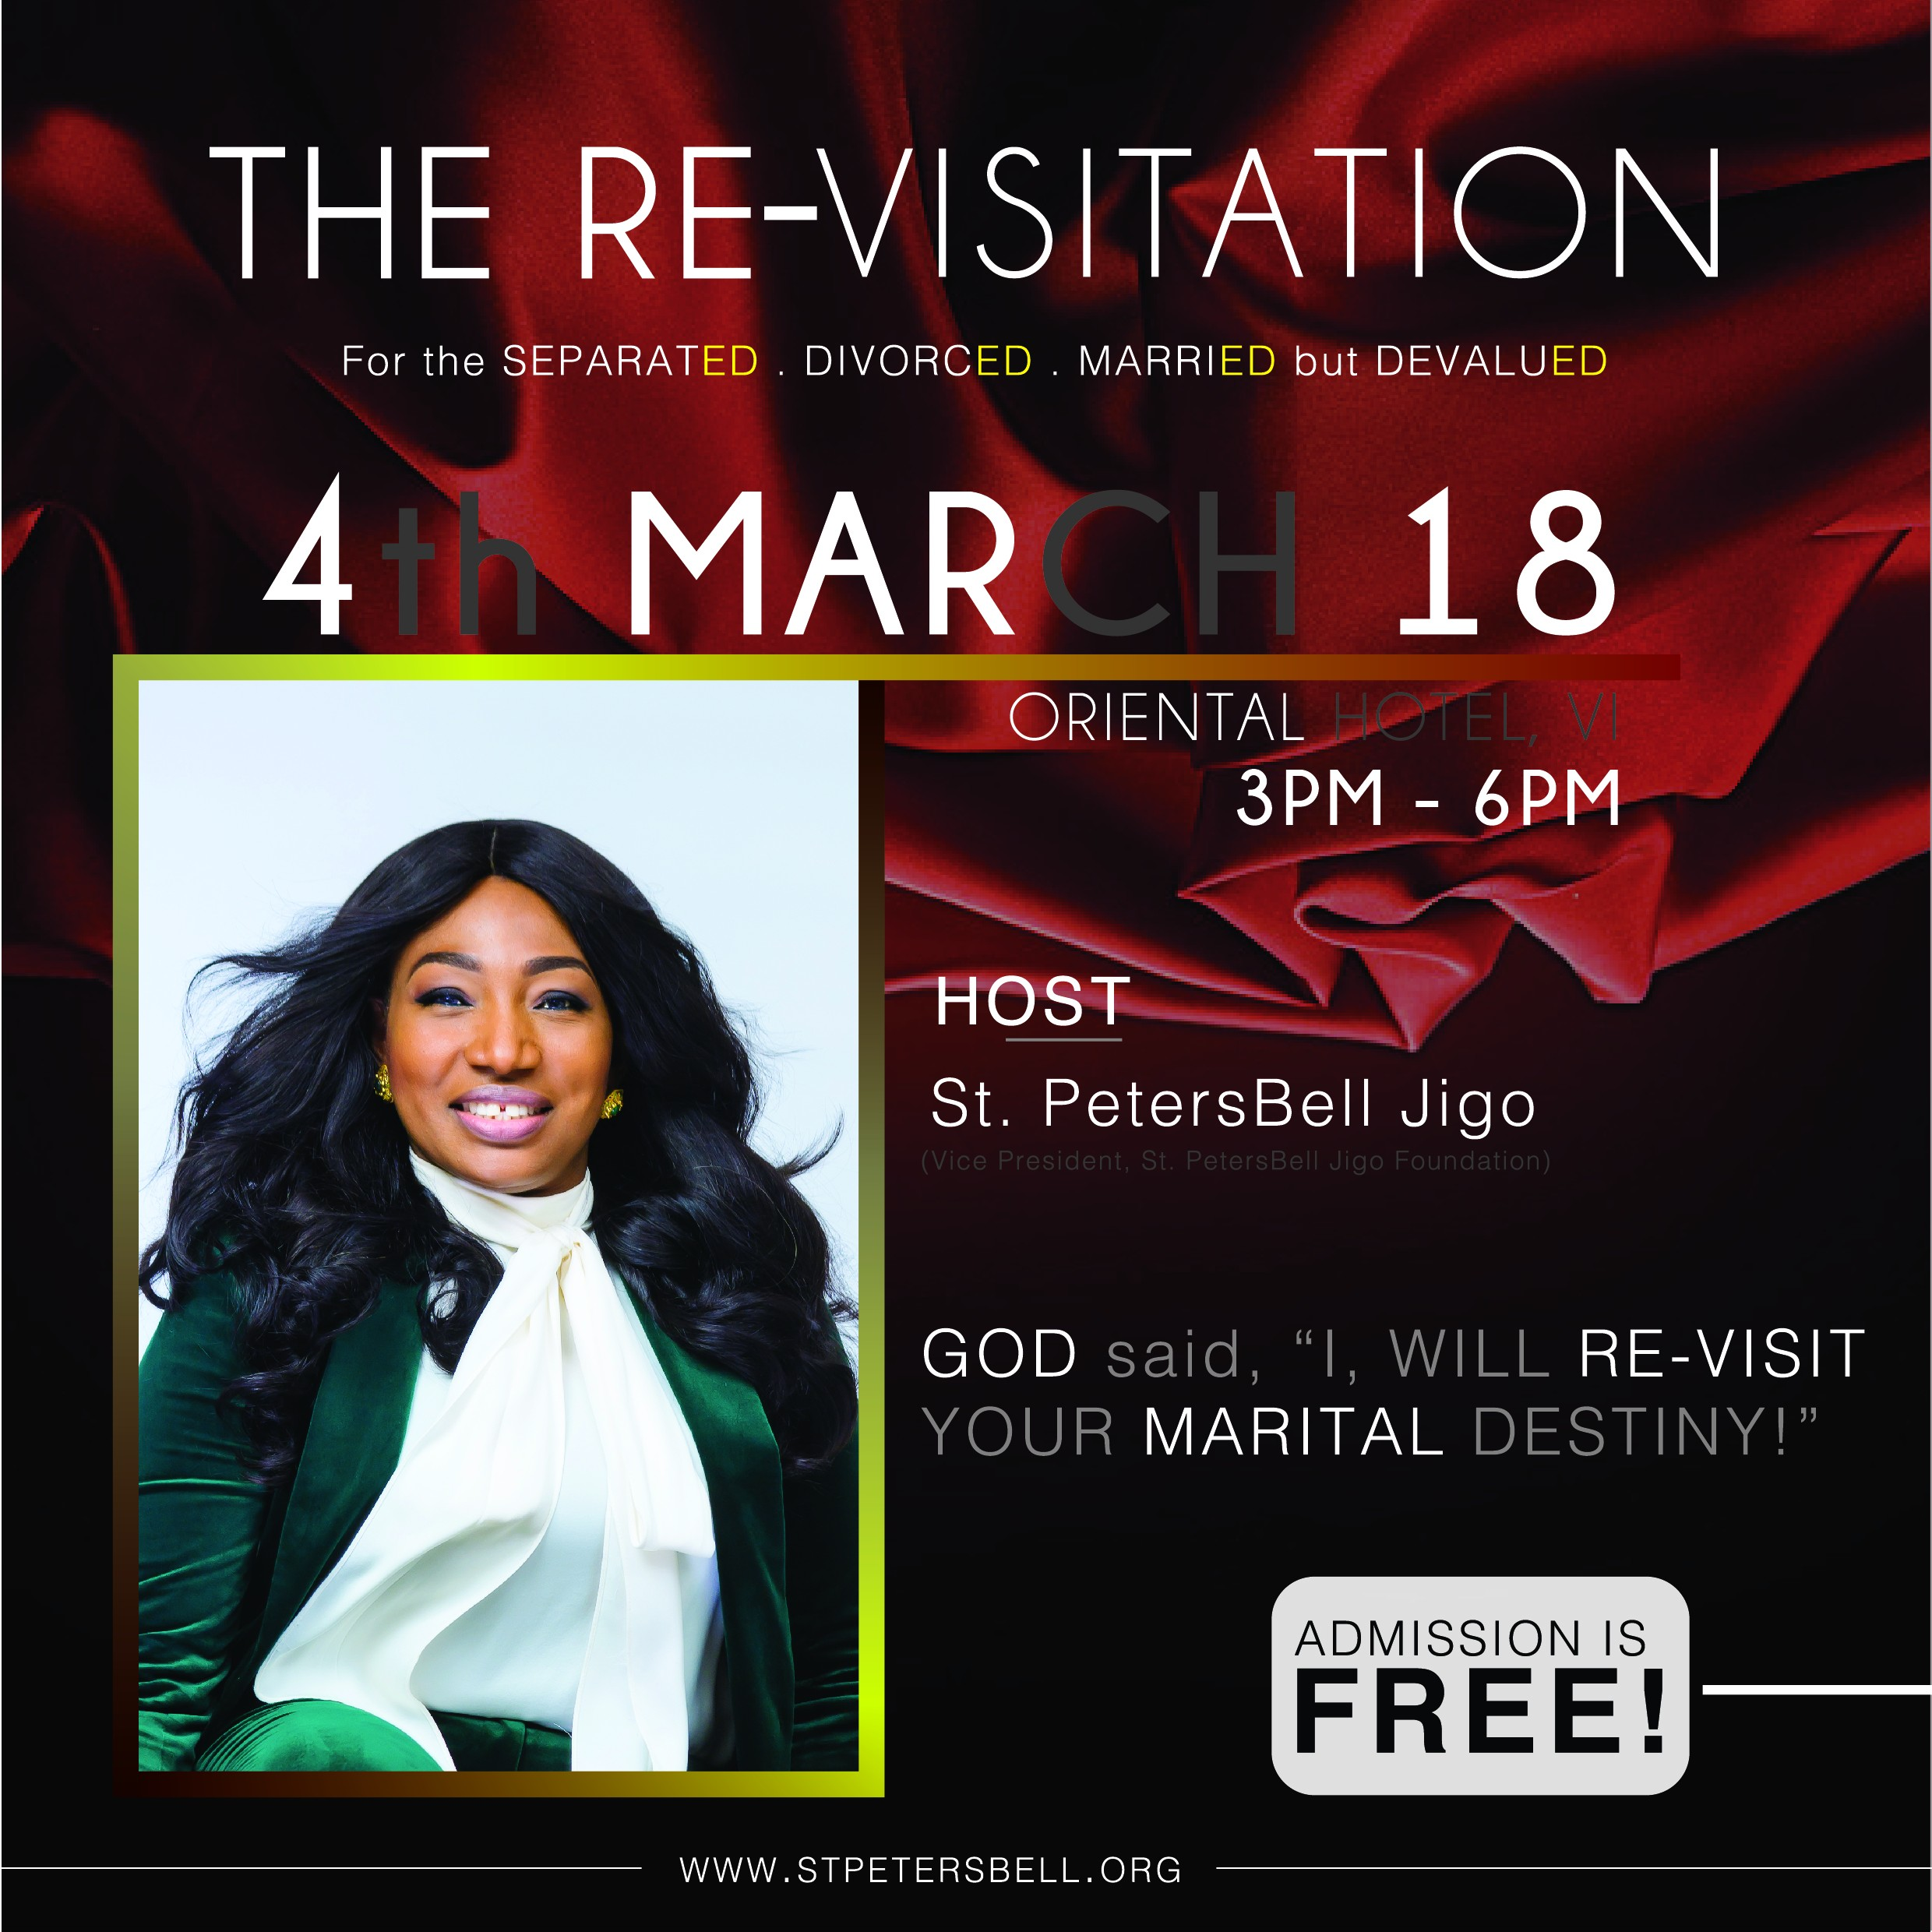 The re-visitation for the seperated, divorced, married but devalued